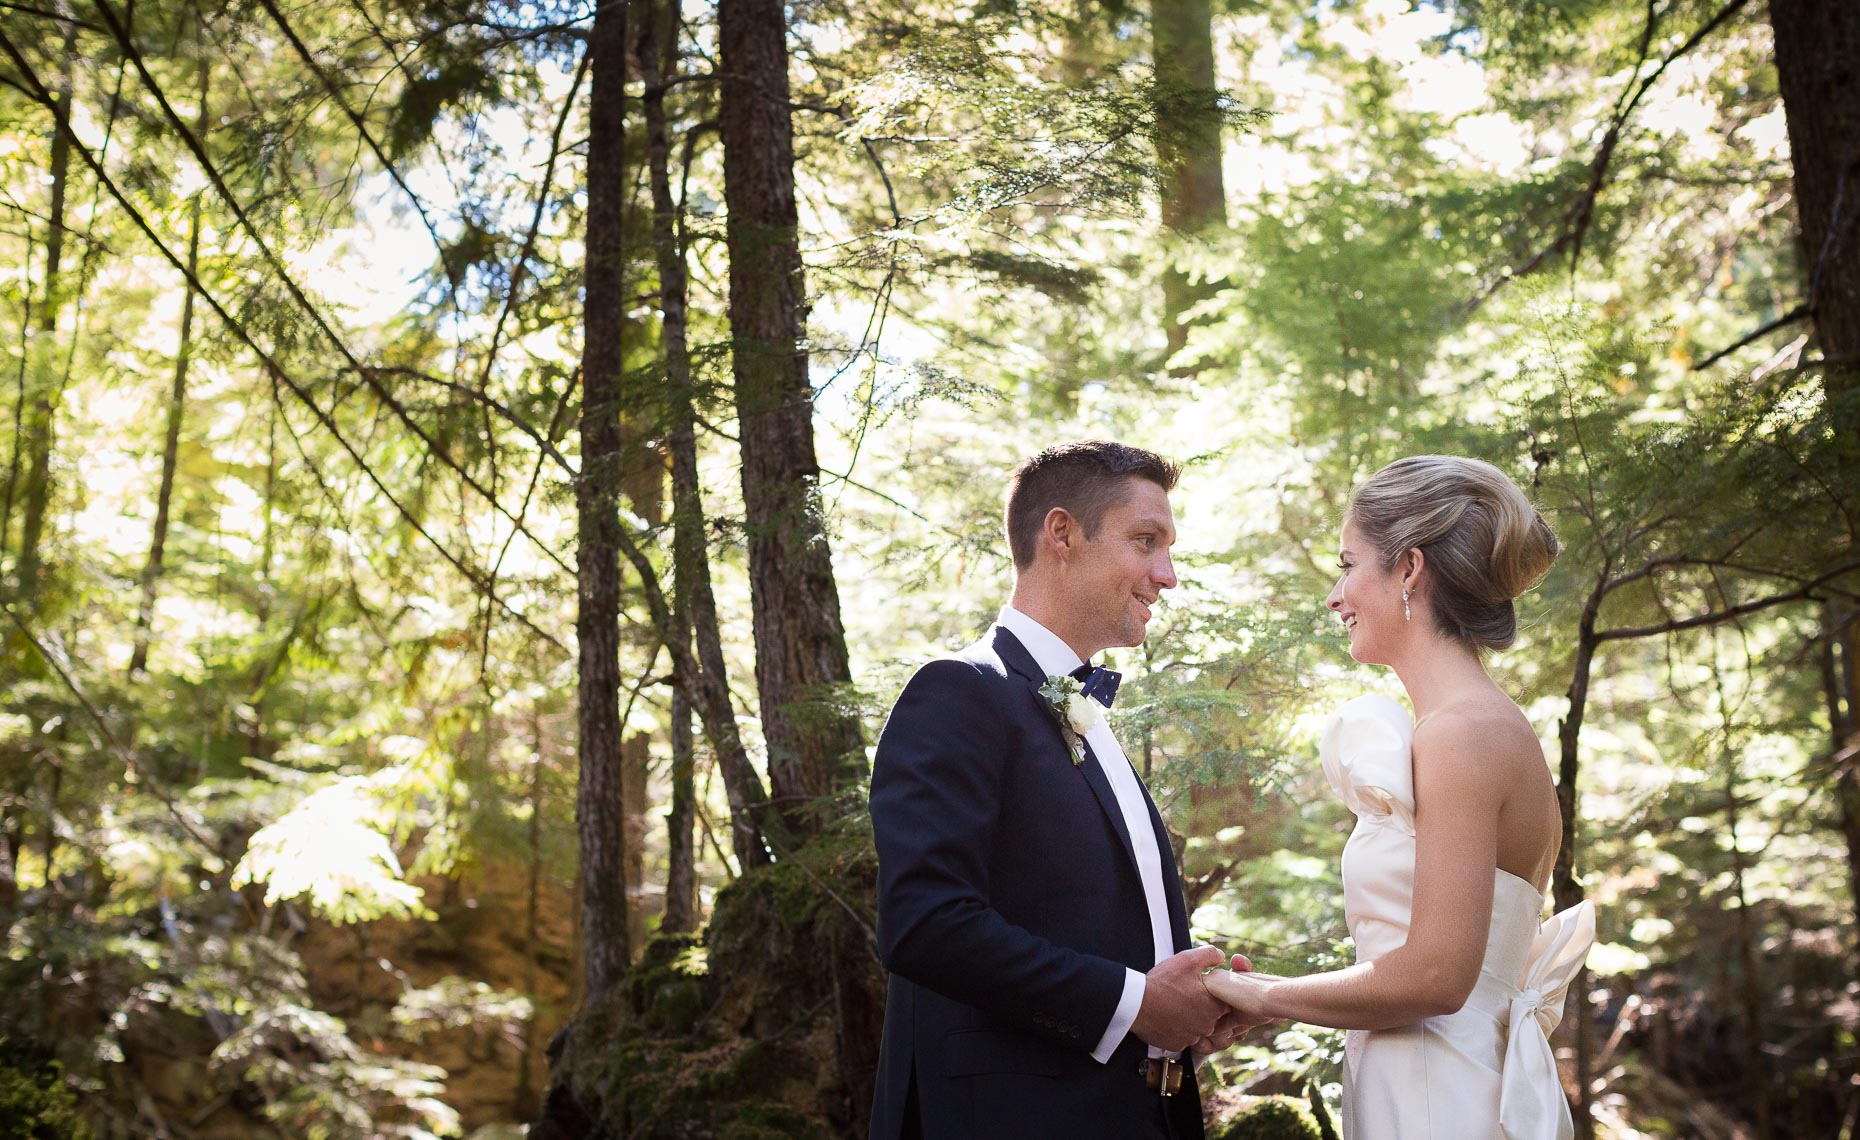 Forest wedding portrait session in Whistler, BC